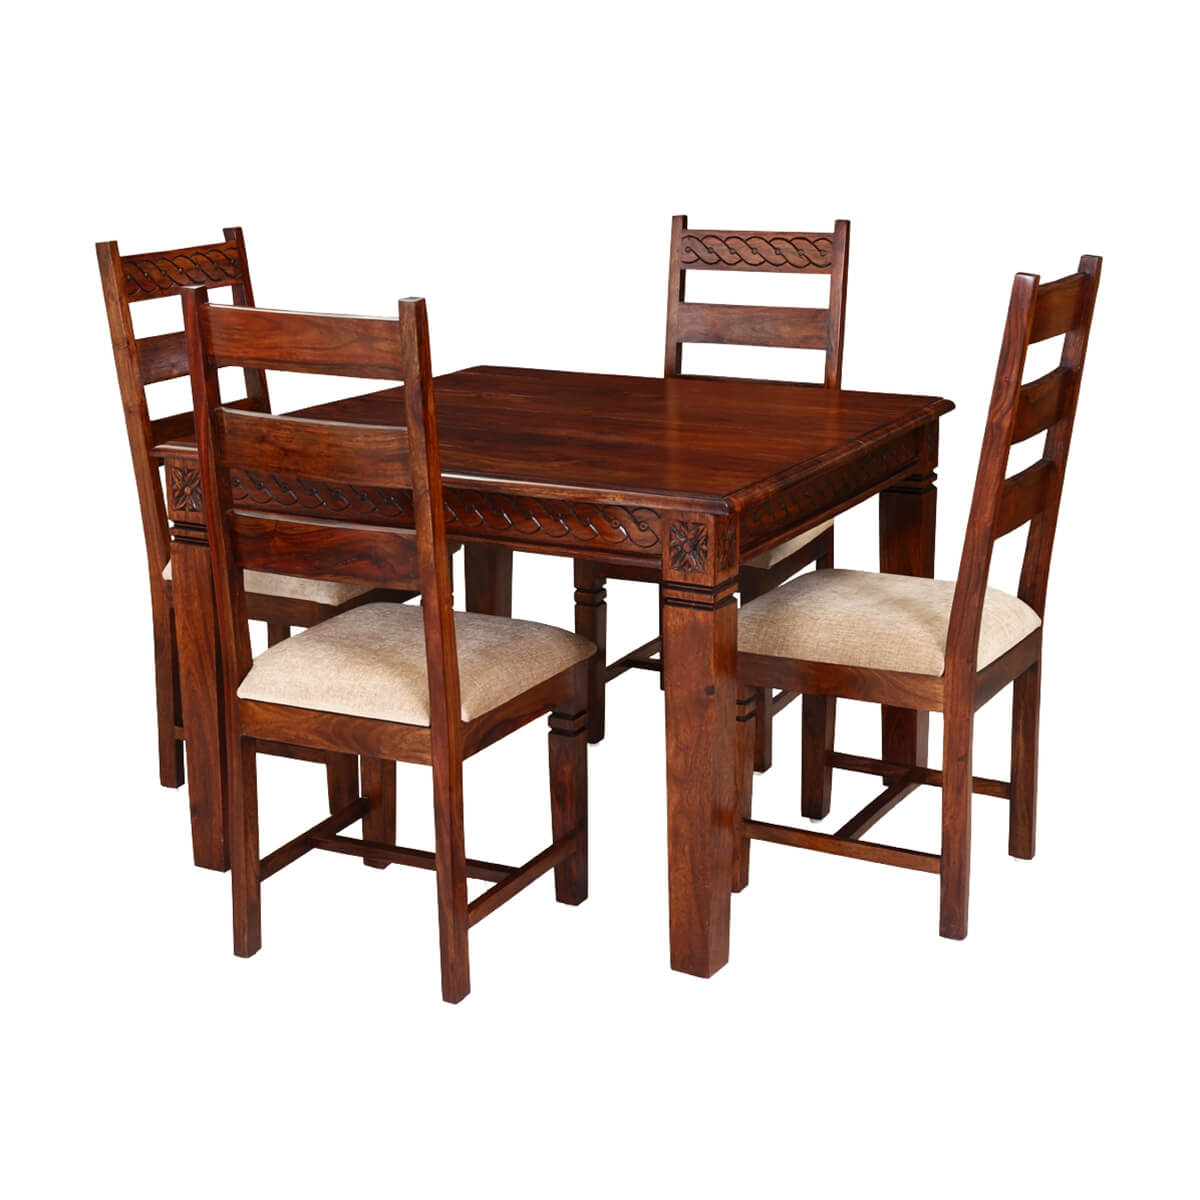 Square Table And Chairs: Handcrafted Solid Wood 5pc Square Dining Table And Chair Set